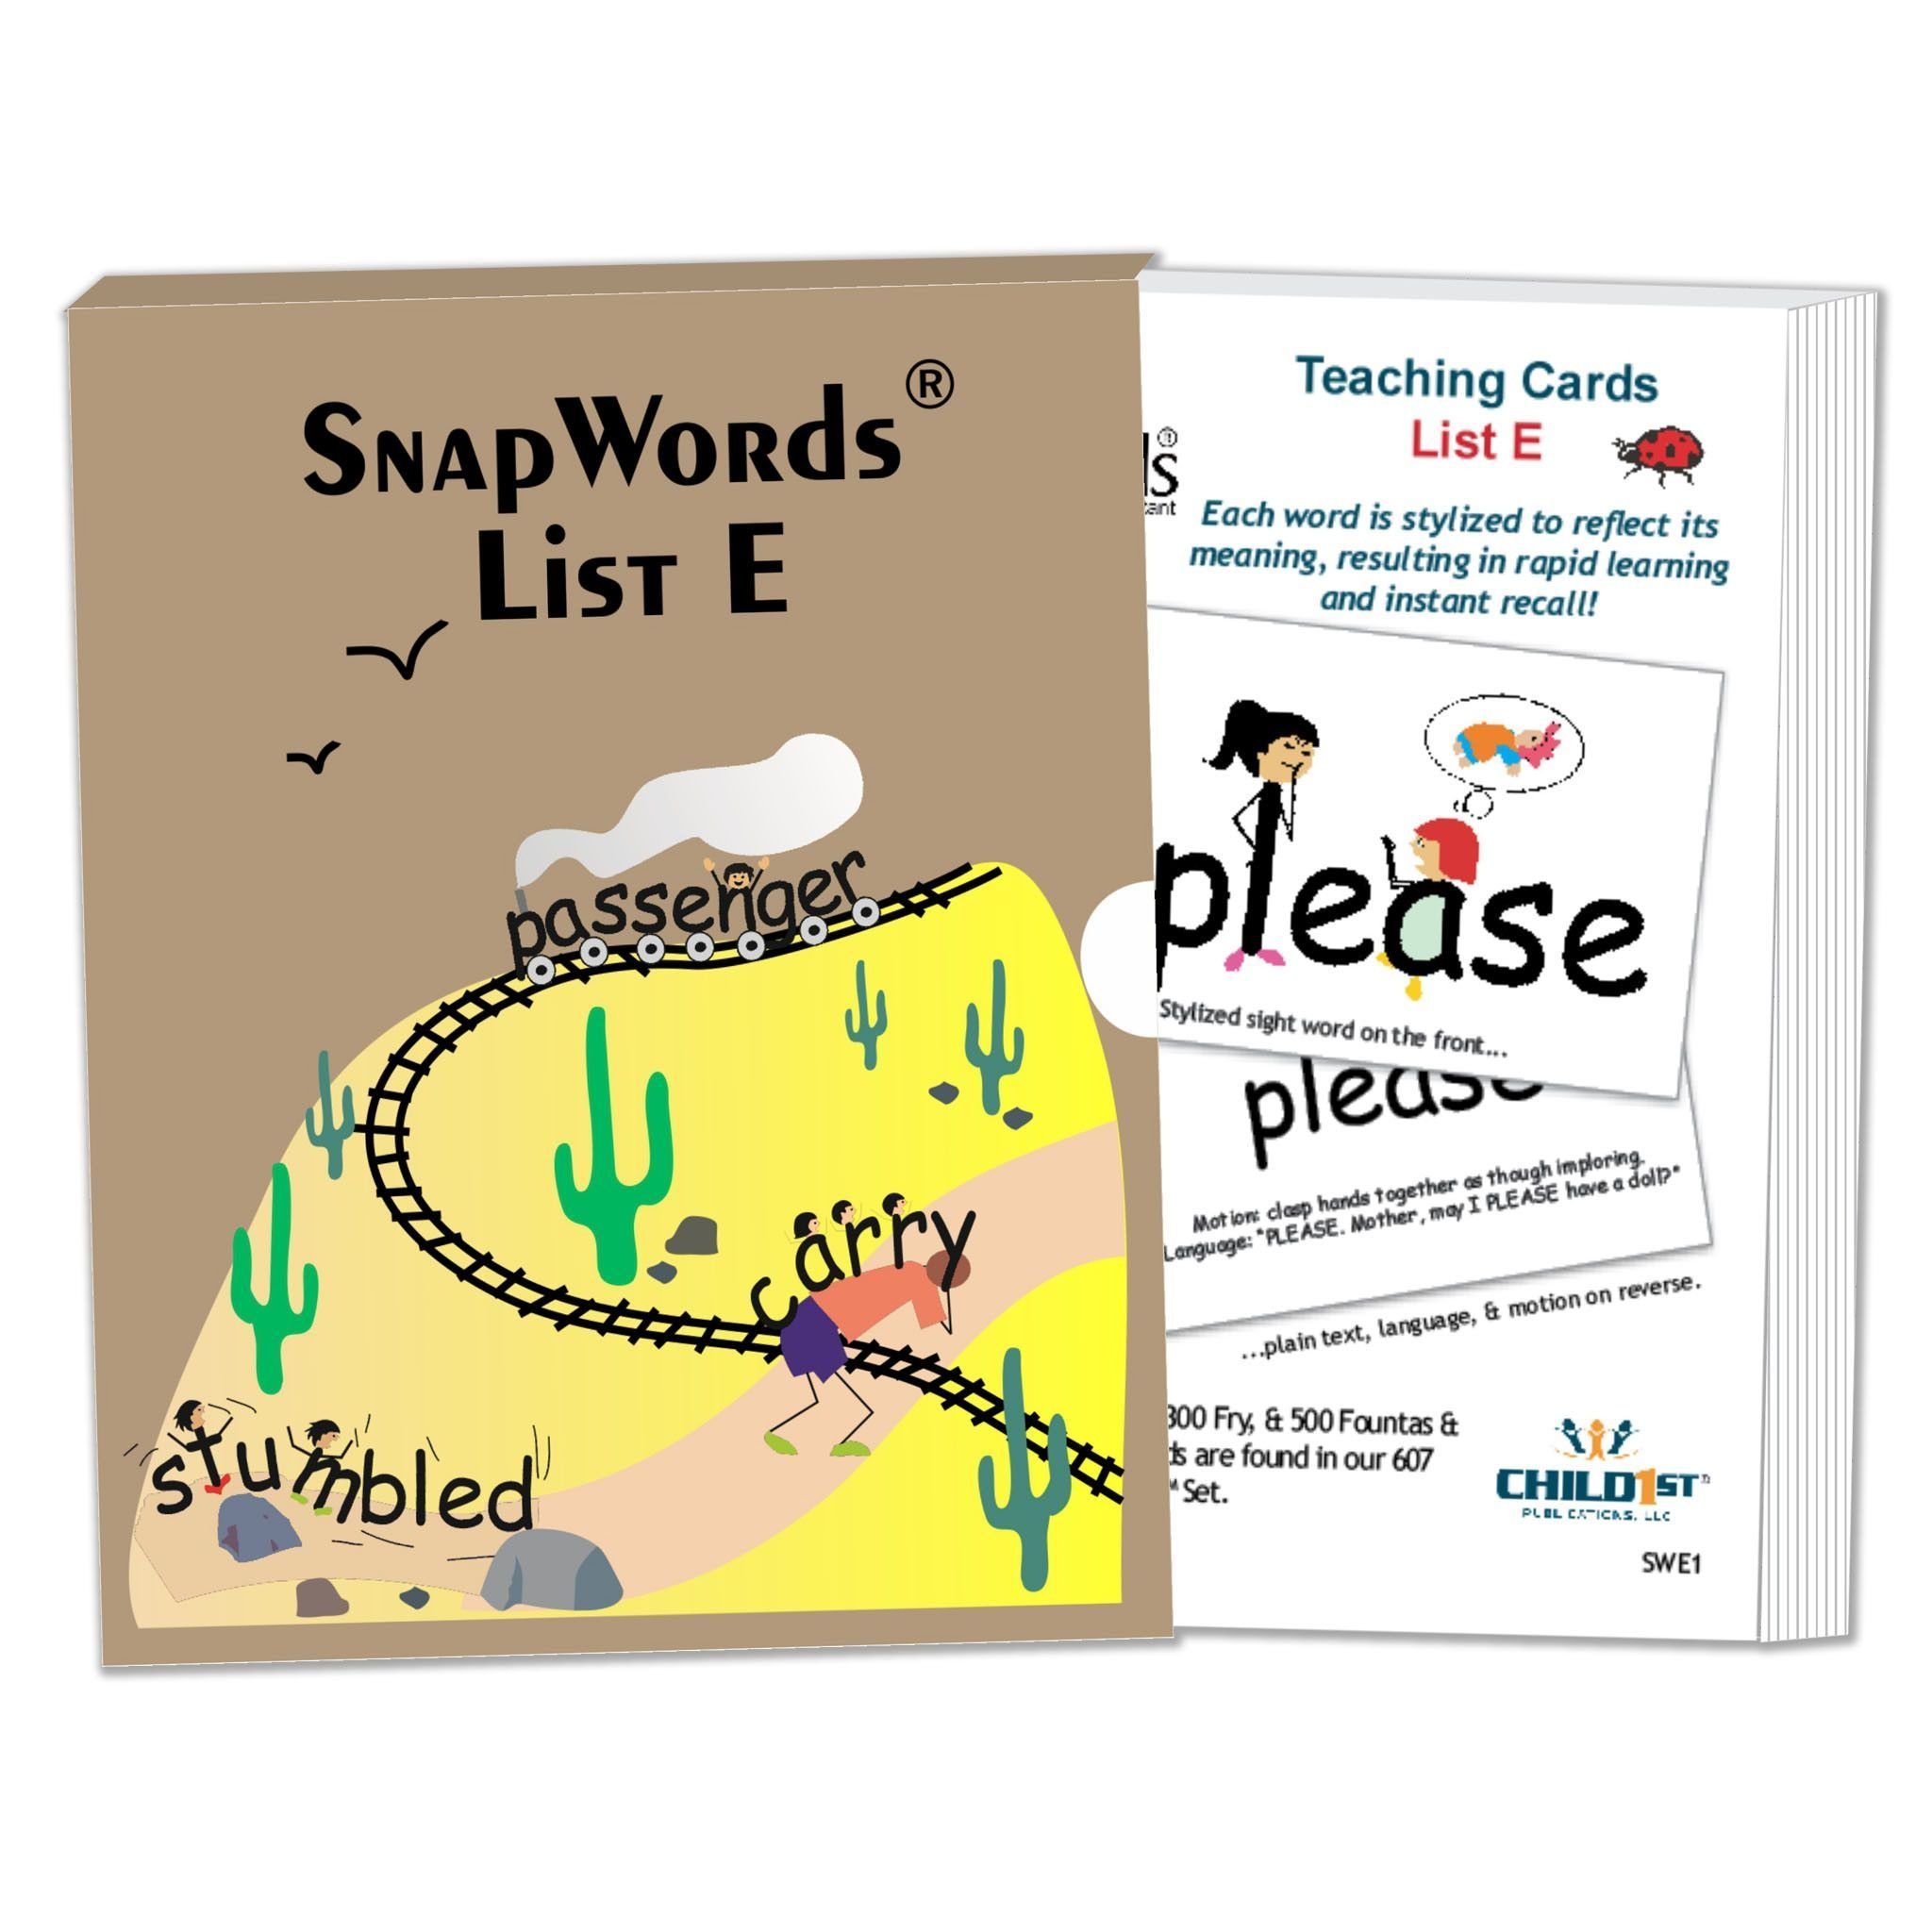 Snapwords® List E Teaching Cards | Products | Teaching, Cards, Sight - Free Printable Snapwords